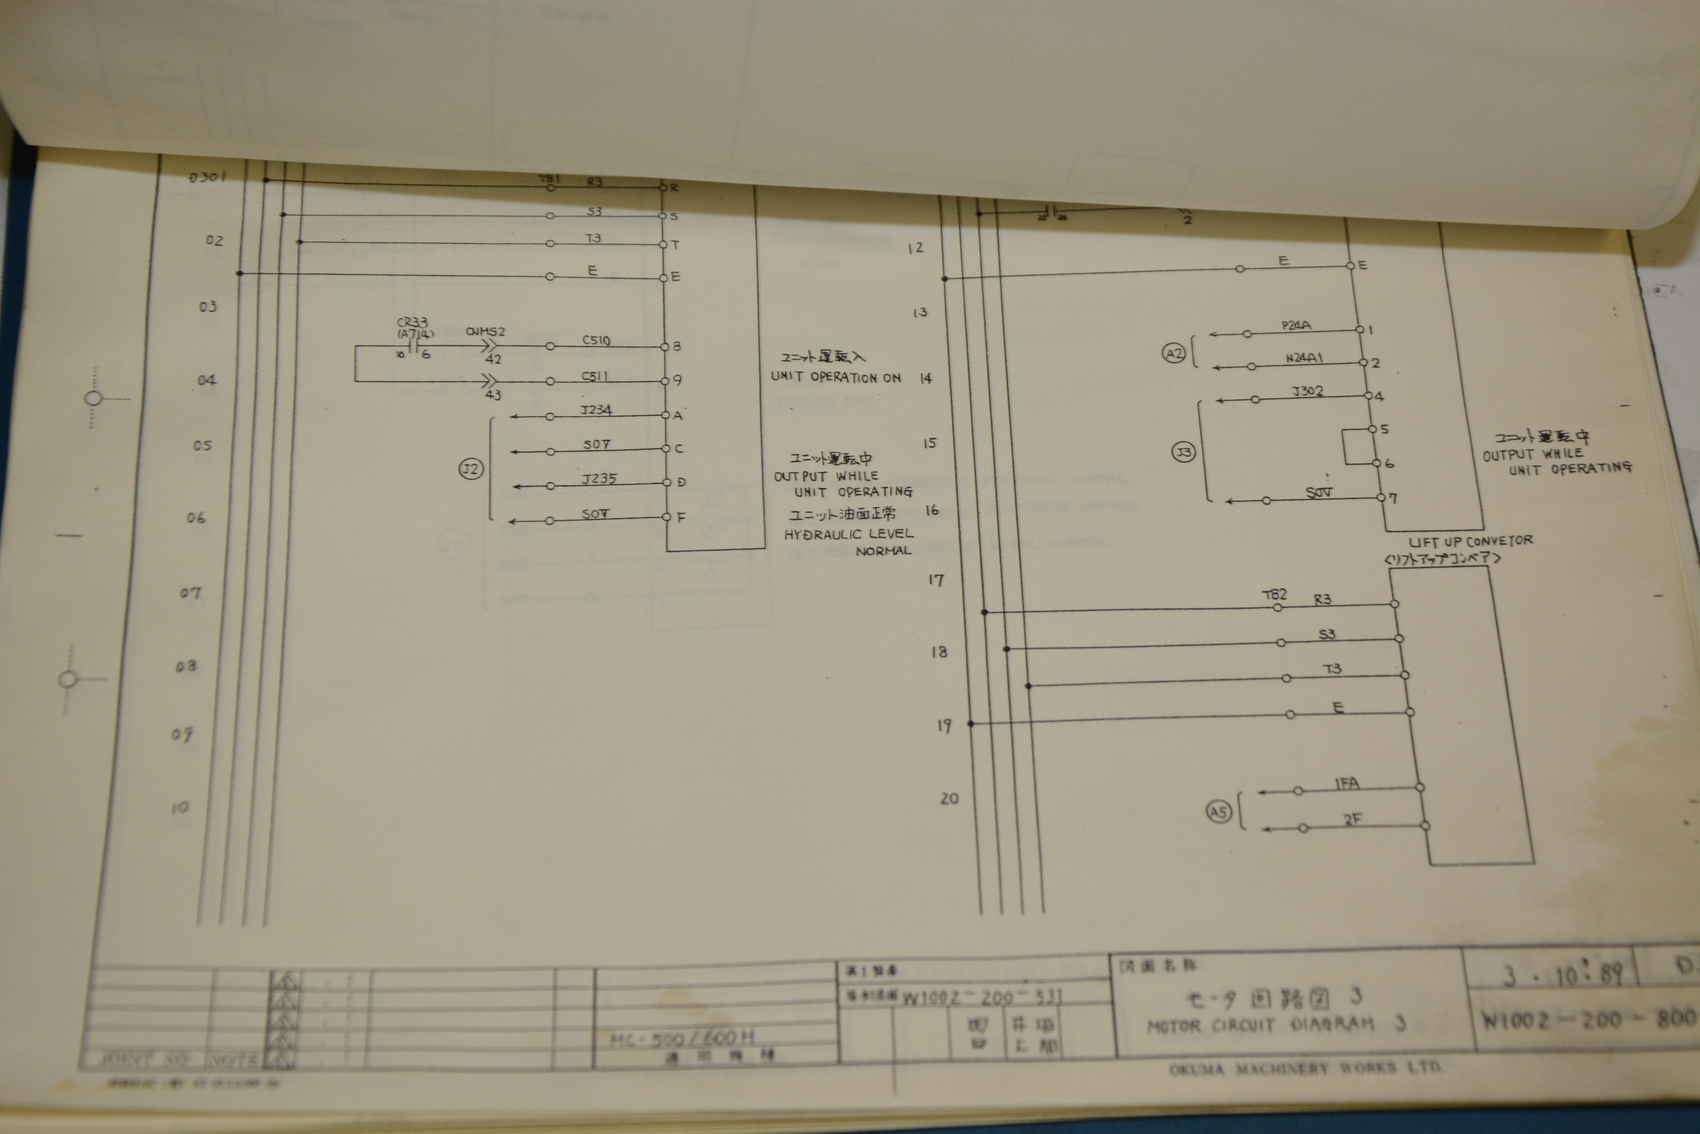 schematic manual for okuma cnc mc500h 5020 control wiring. Black Bedroom Furniture Sets. Home Design Ideas